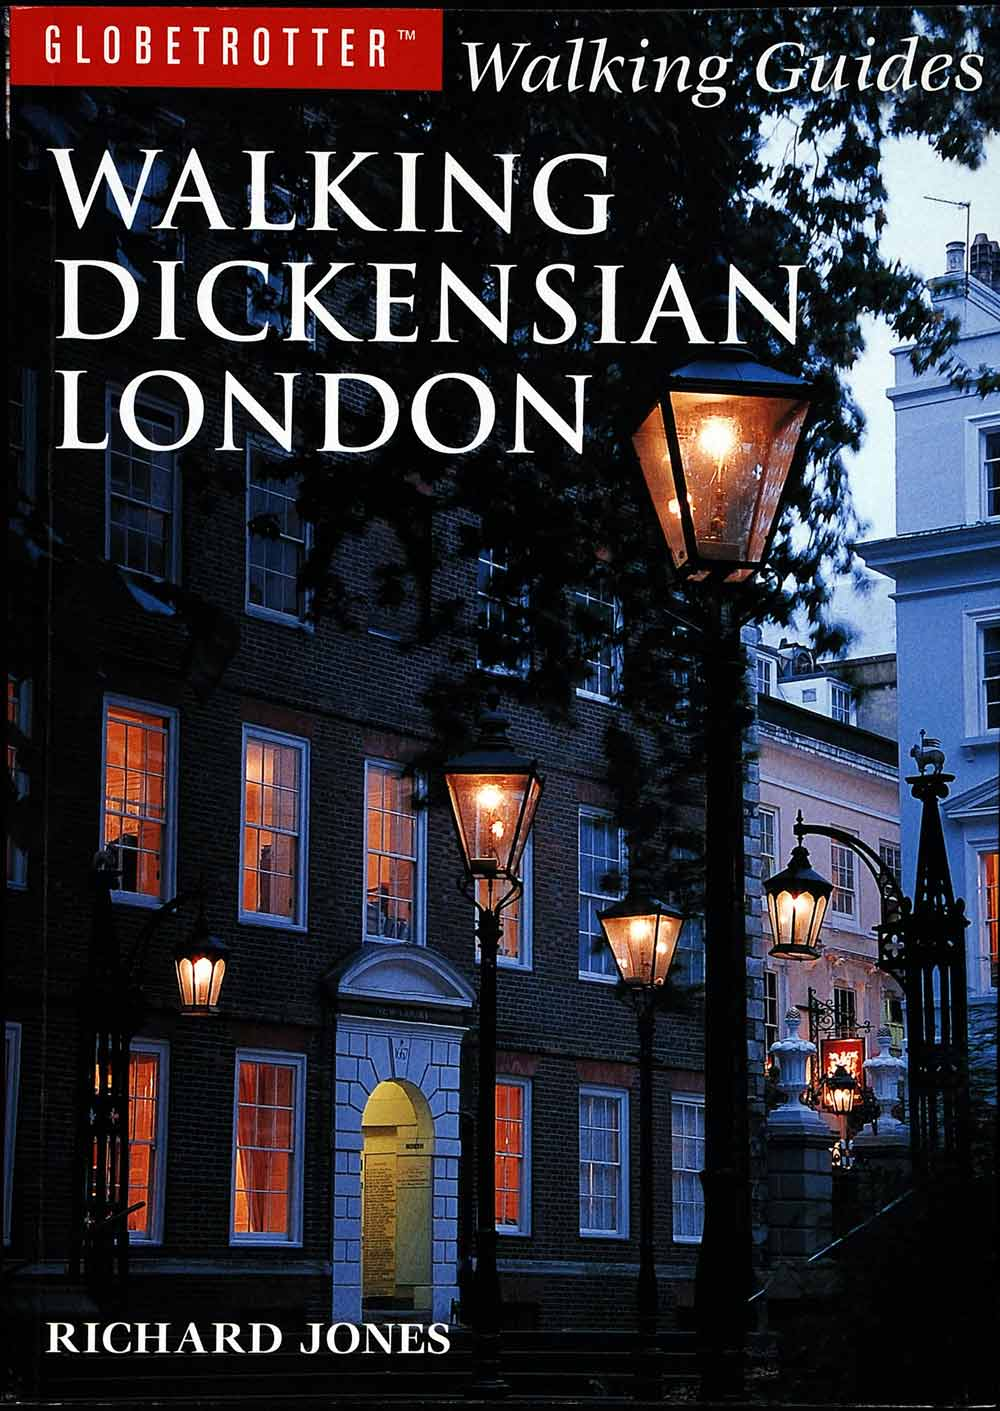 Richard Jones. Walking Dickensian London. London: New Holland, 2004